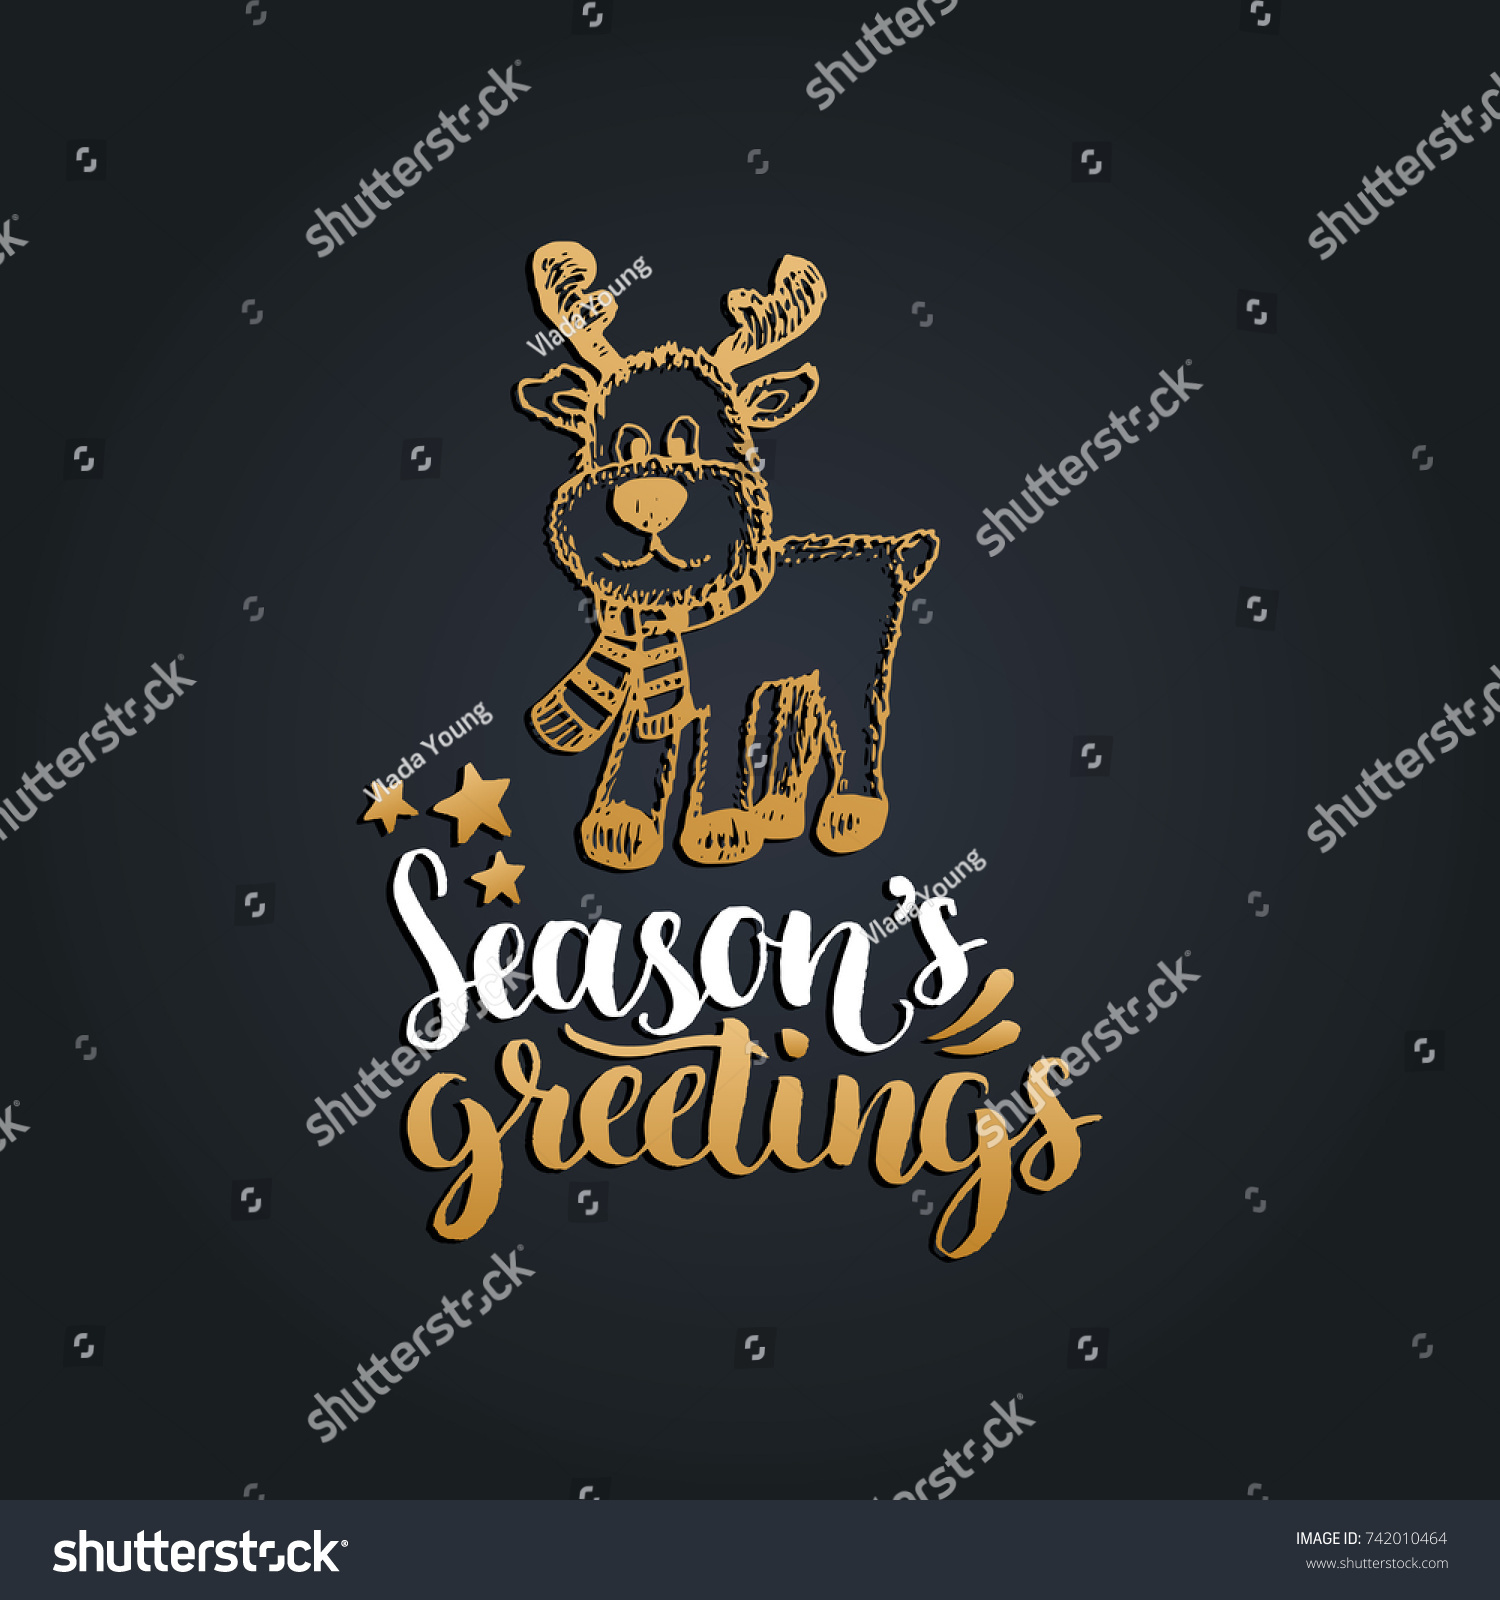 Seasons Greetings Lettering On Black Background Stock Vector